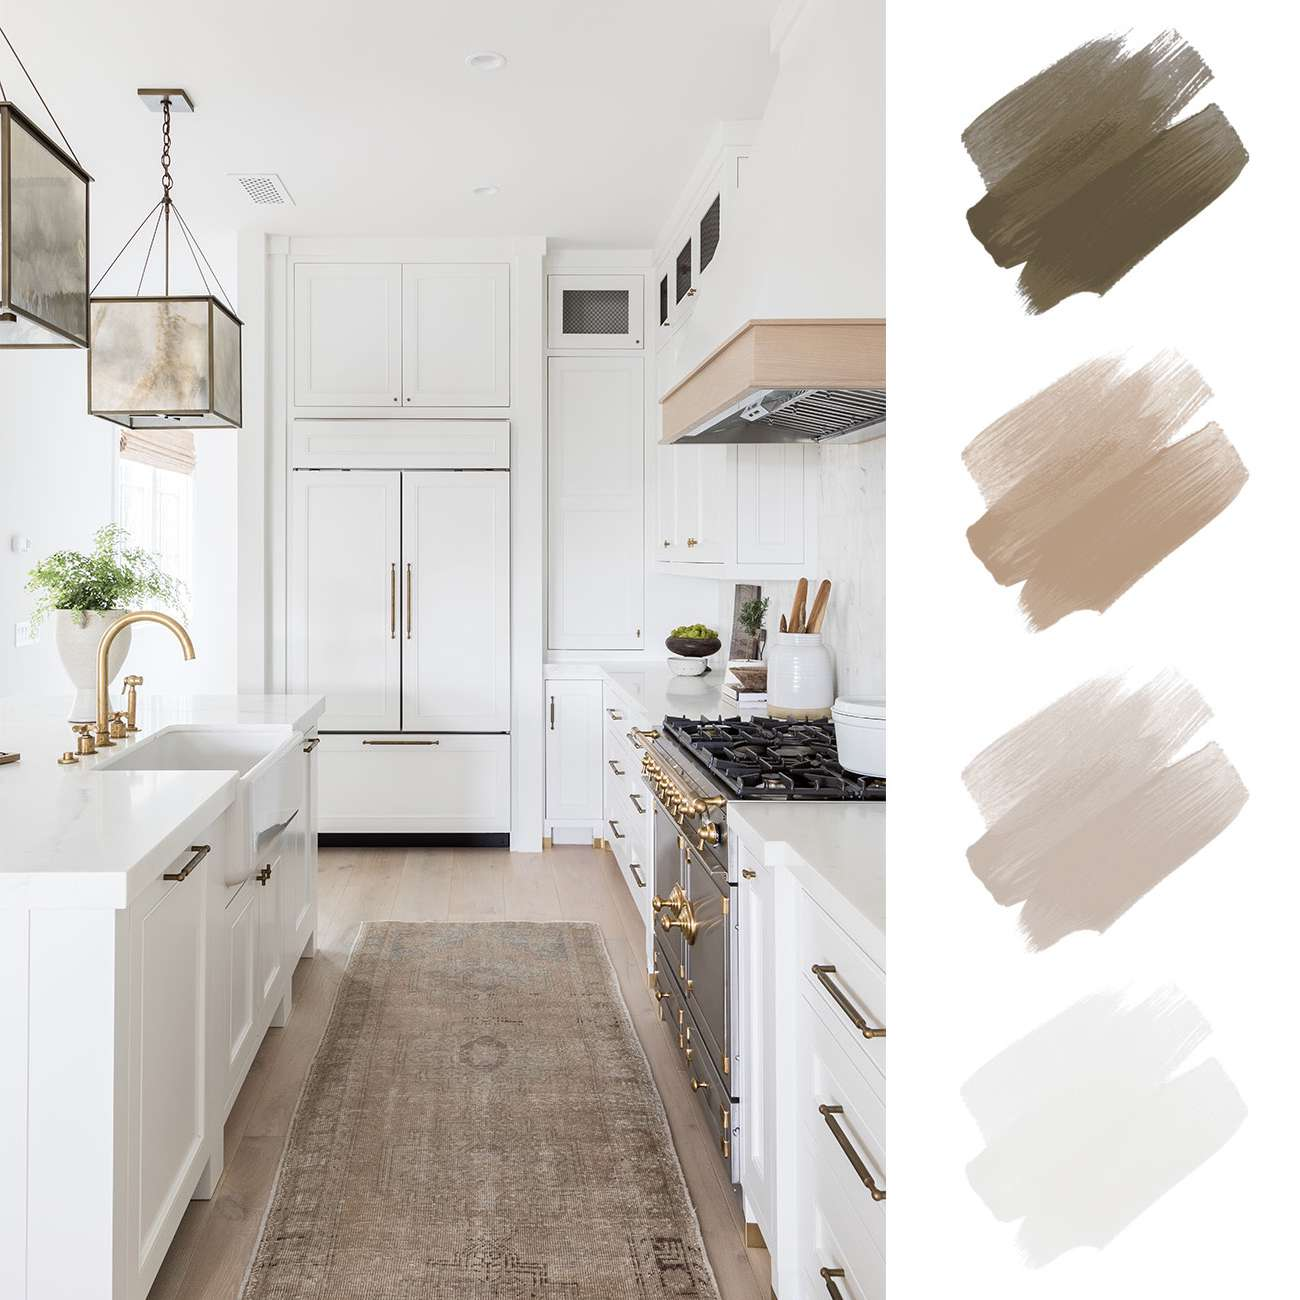 neutral color scheme - brown and tan and white